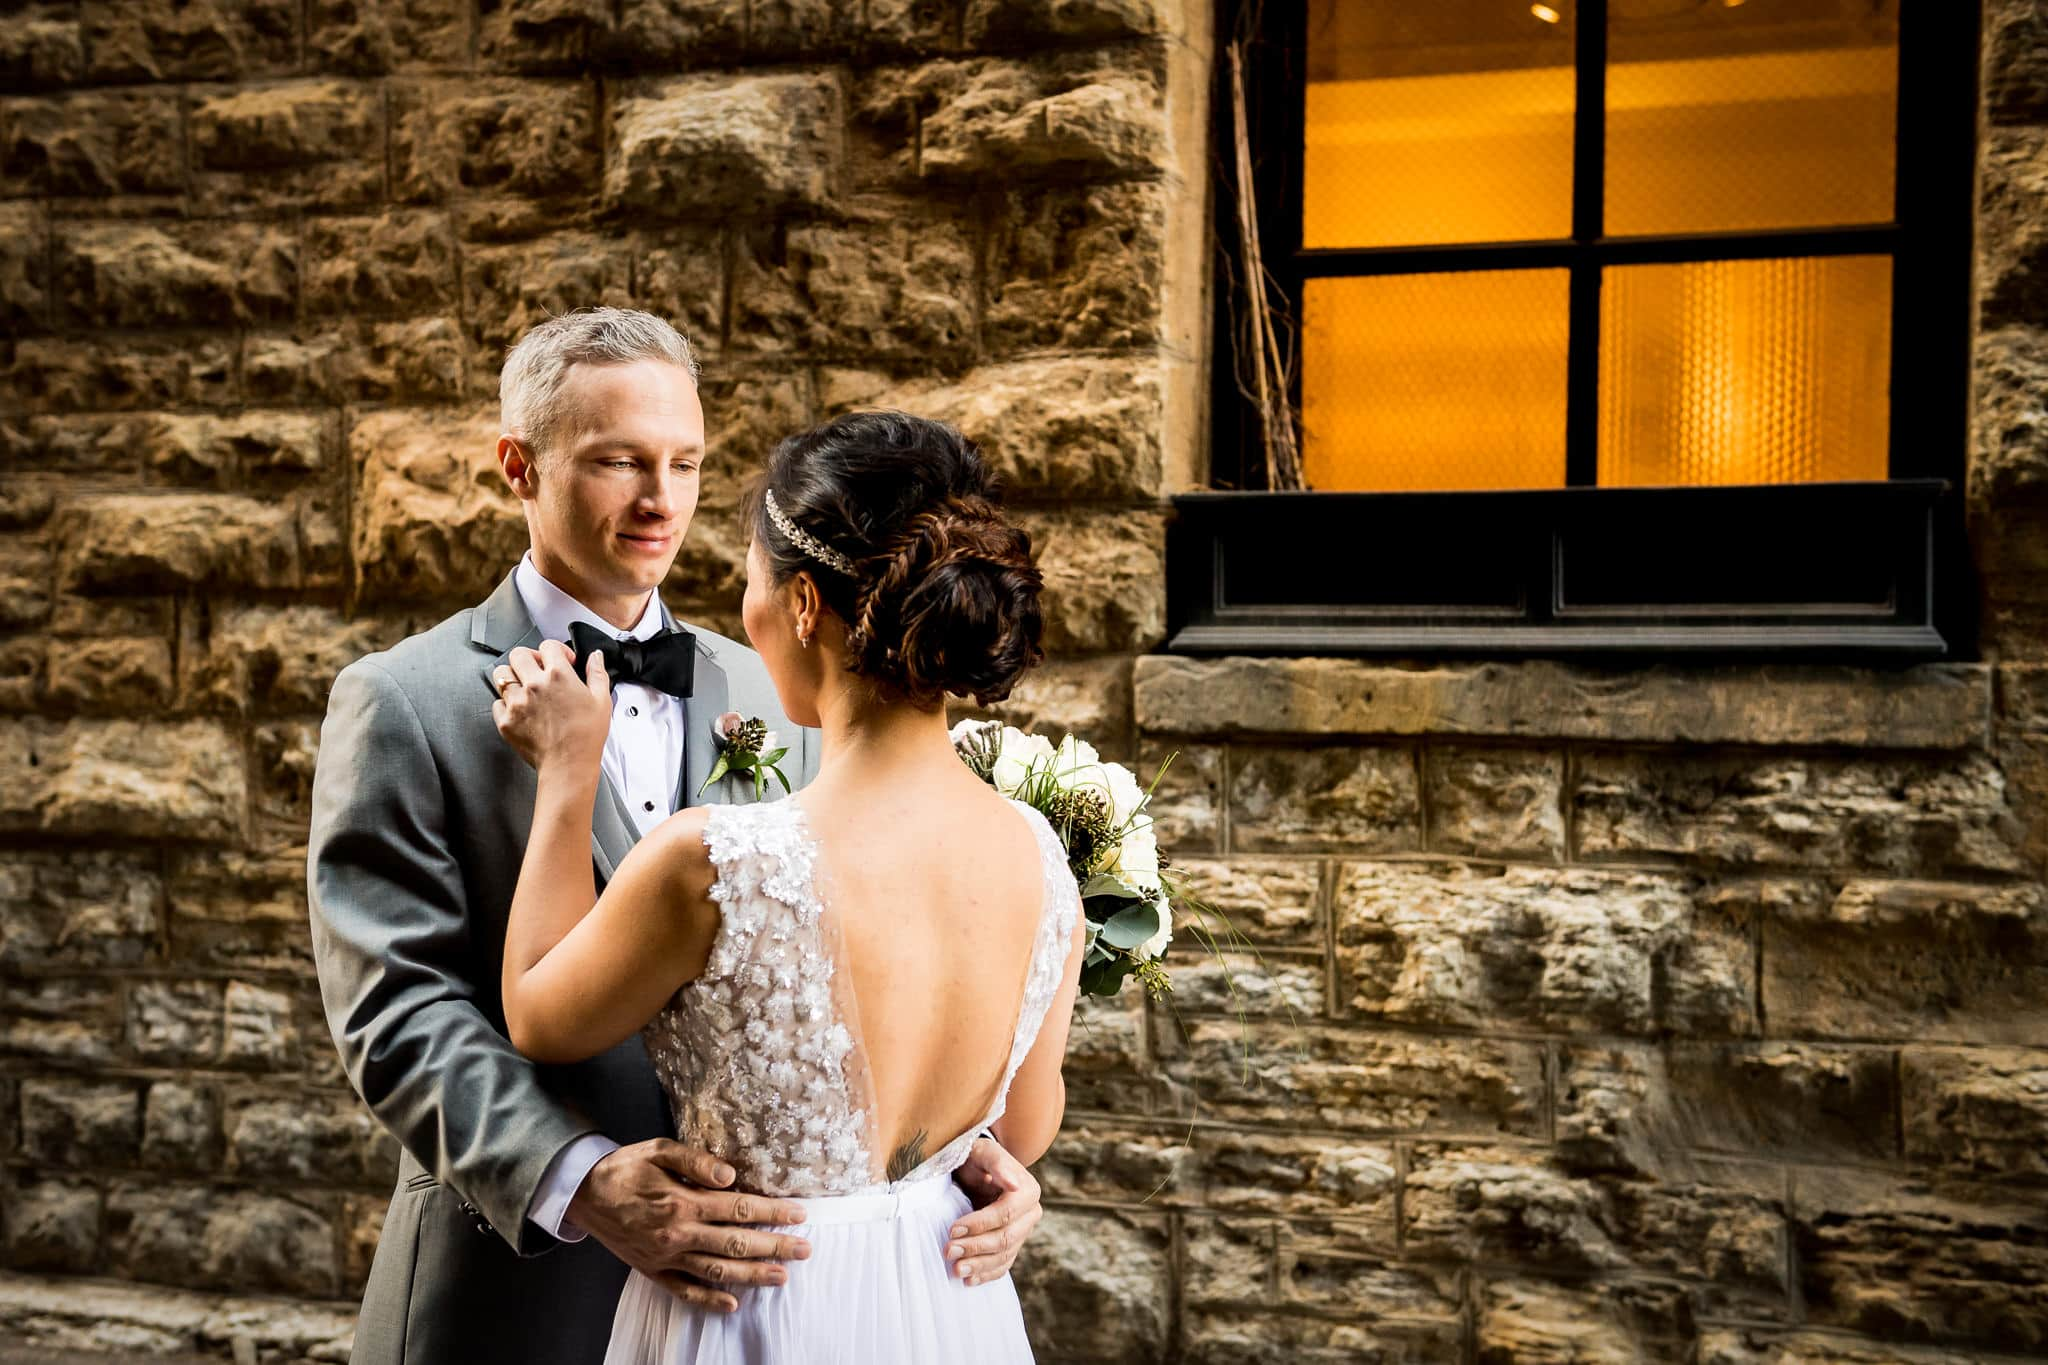 Bride and Groom share an intimate moment in the alley behind the Hewing Hotel